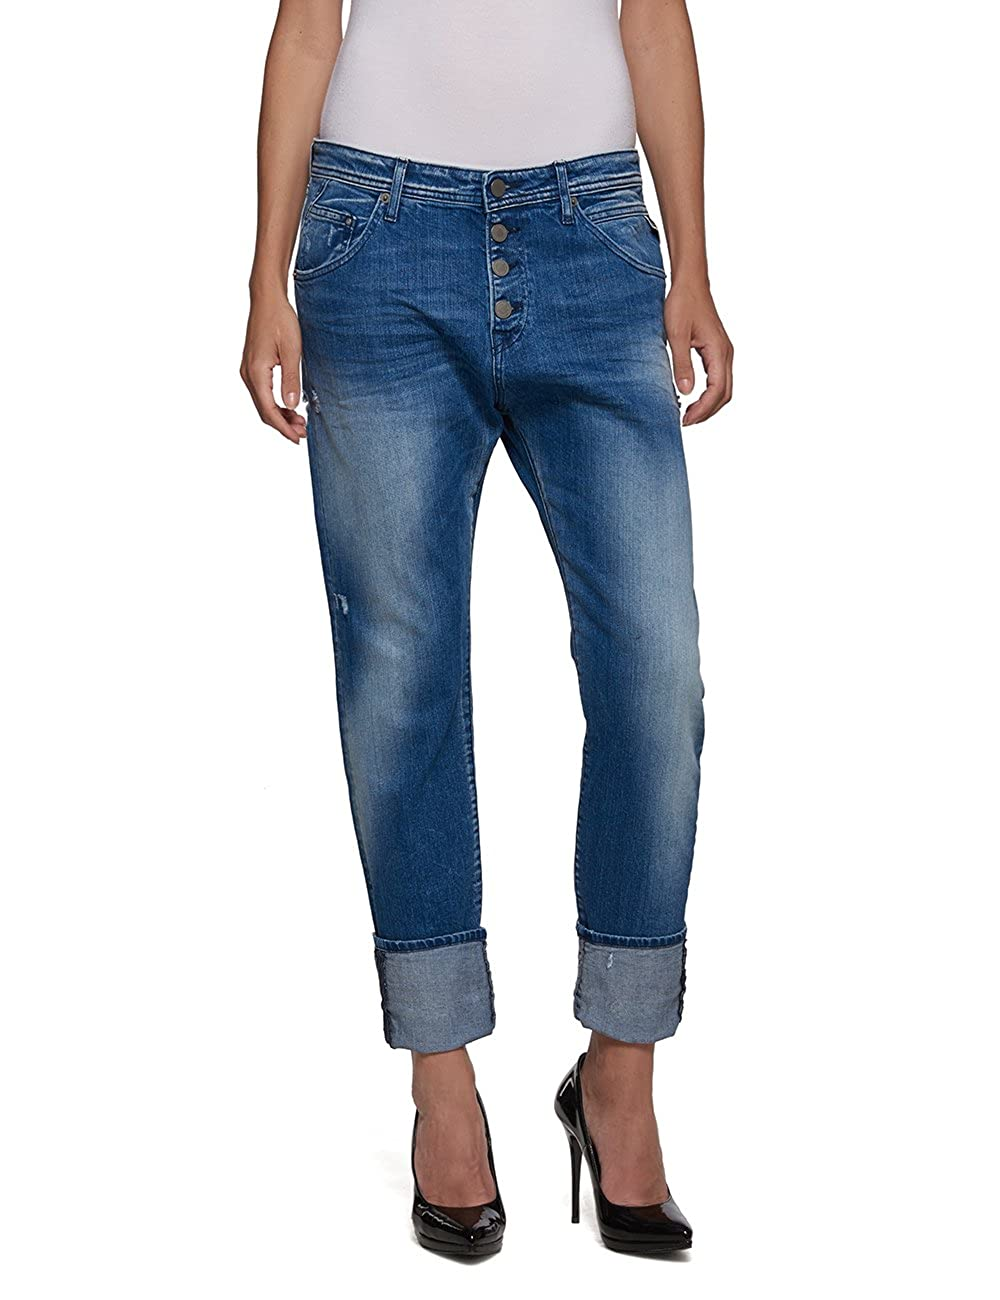 REPLAY Pilar, Jeans Mujer